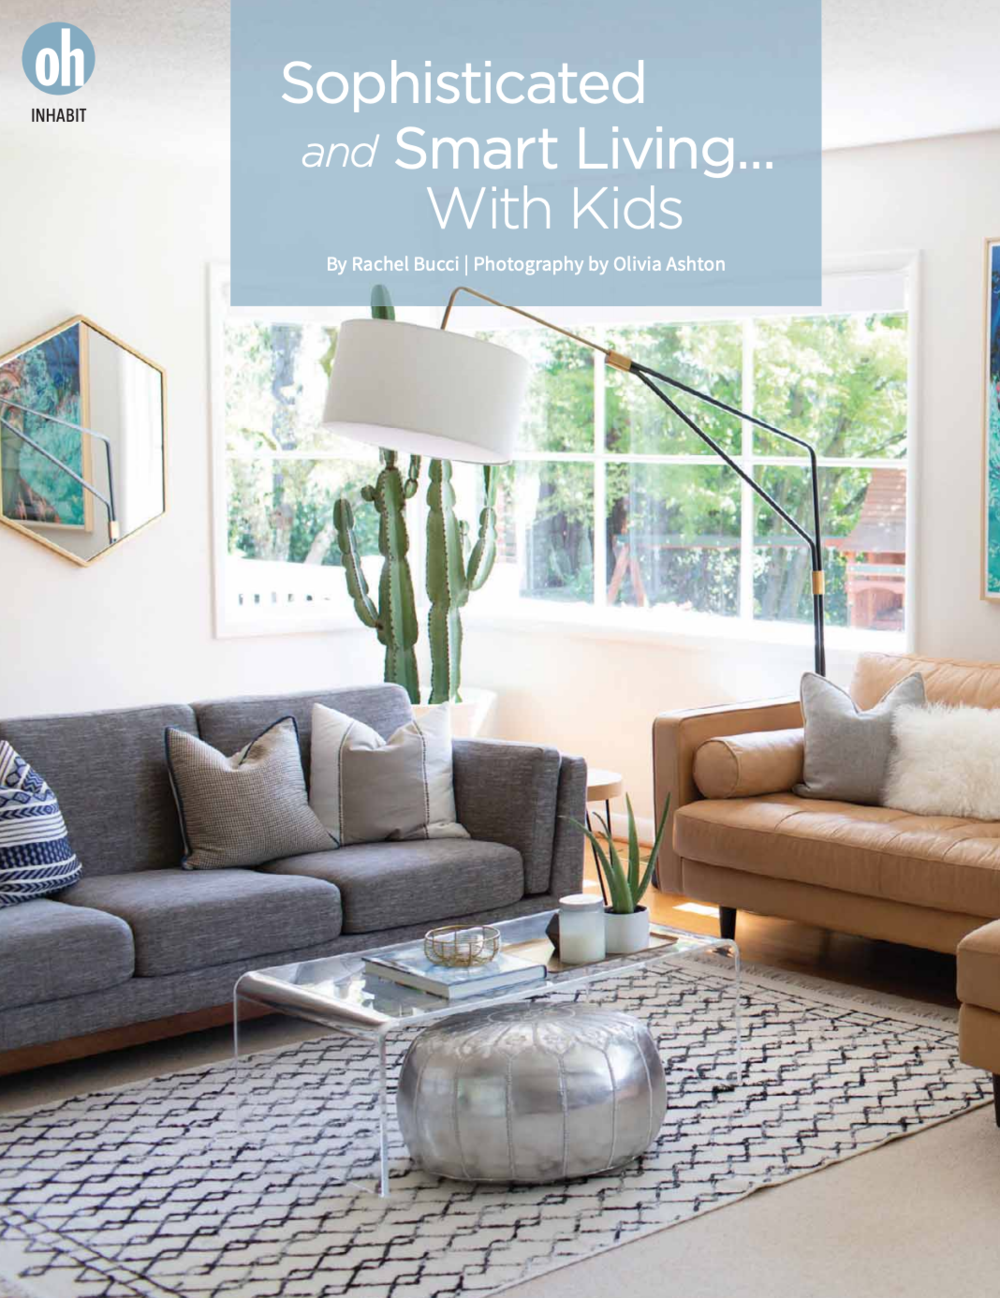 """Sophisticated and Smart Living... With Kids - For Amy Carnahan, interior designer and mother to three children under 8, the idea that family-friendly spaces can peacefully coexist with sophisticated design is nowhere more evident than in her own light-infused Portland ranch.Carnahan's home is not only functional – a key element in a family-friendly space – it's infused with a sense of playfulness and personality, surfaces that stand up to daily life and loads of light. """"I have to have a lot of light,"""" says Carnahan. """"In Oregon there are a lot of dark spots. White walls make everything brighter. It really can transform your house."""""""